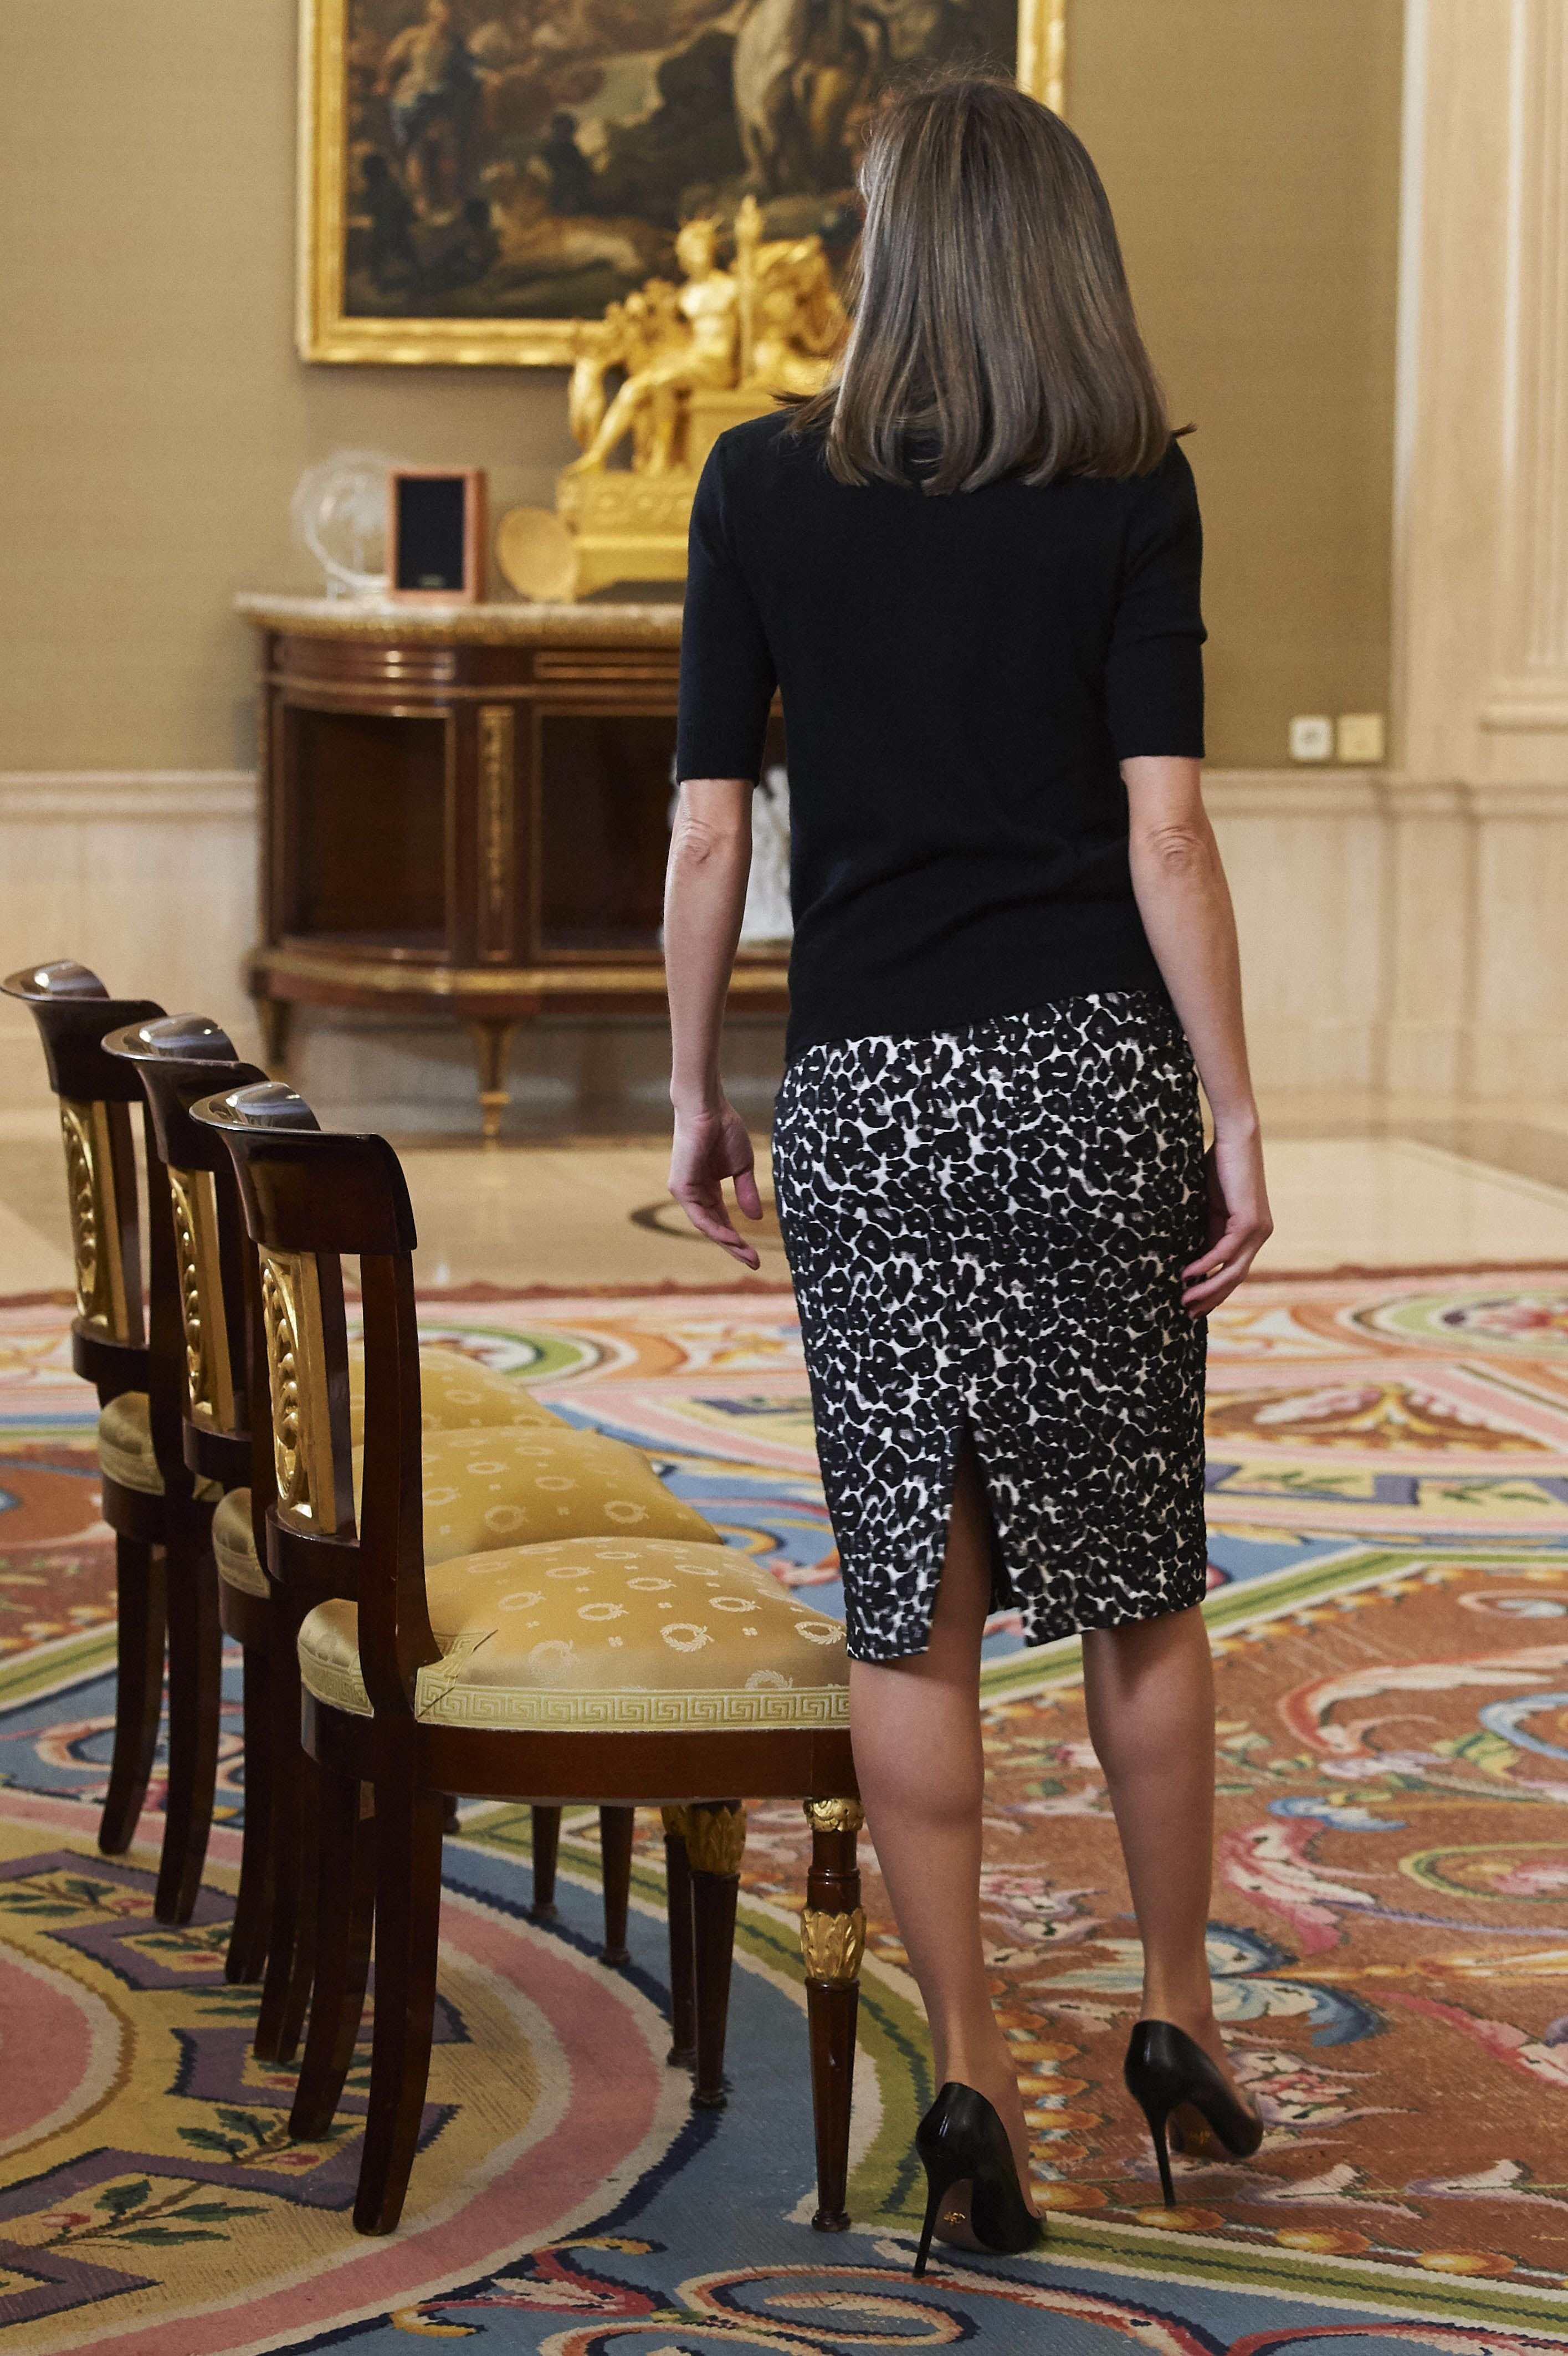 09-02-2018 Prieto Queen Letizia during 28th edition of the Tomas Francisco Prieto prize at Zarzuela palace in Madrid. The prize was awarded to Mrs. Victoria Civera.  No Spain  ' PPE/Thorton //THORTON-PPE_1302.8293/Credit:PPE/THORTON/SIPA/1802091819, Image: 362790152, License: Rights-managed, Restrictions: , Model Release: no, Credit line: Profimedia, TEMP Sipa Press